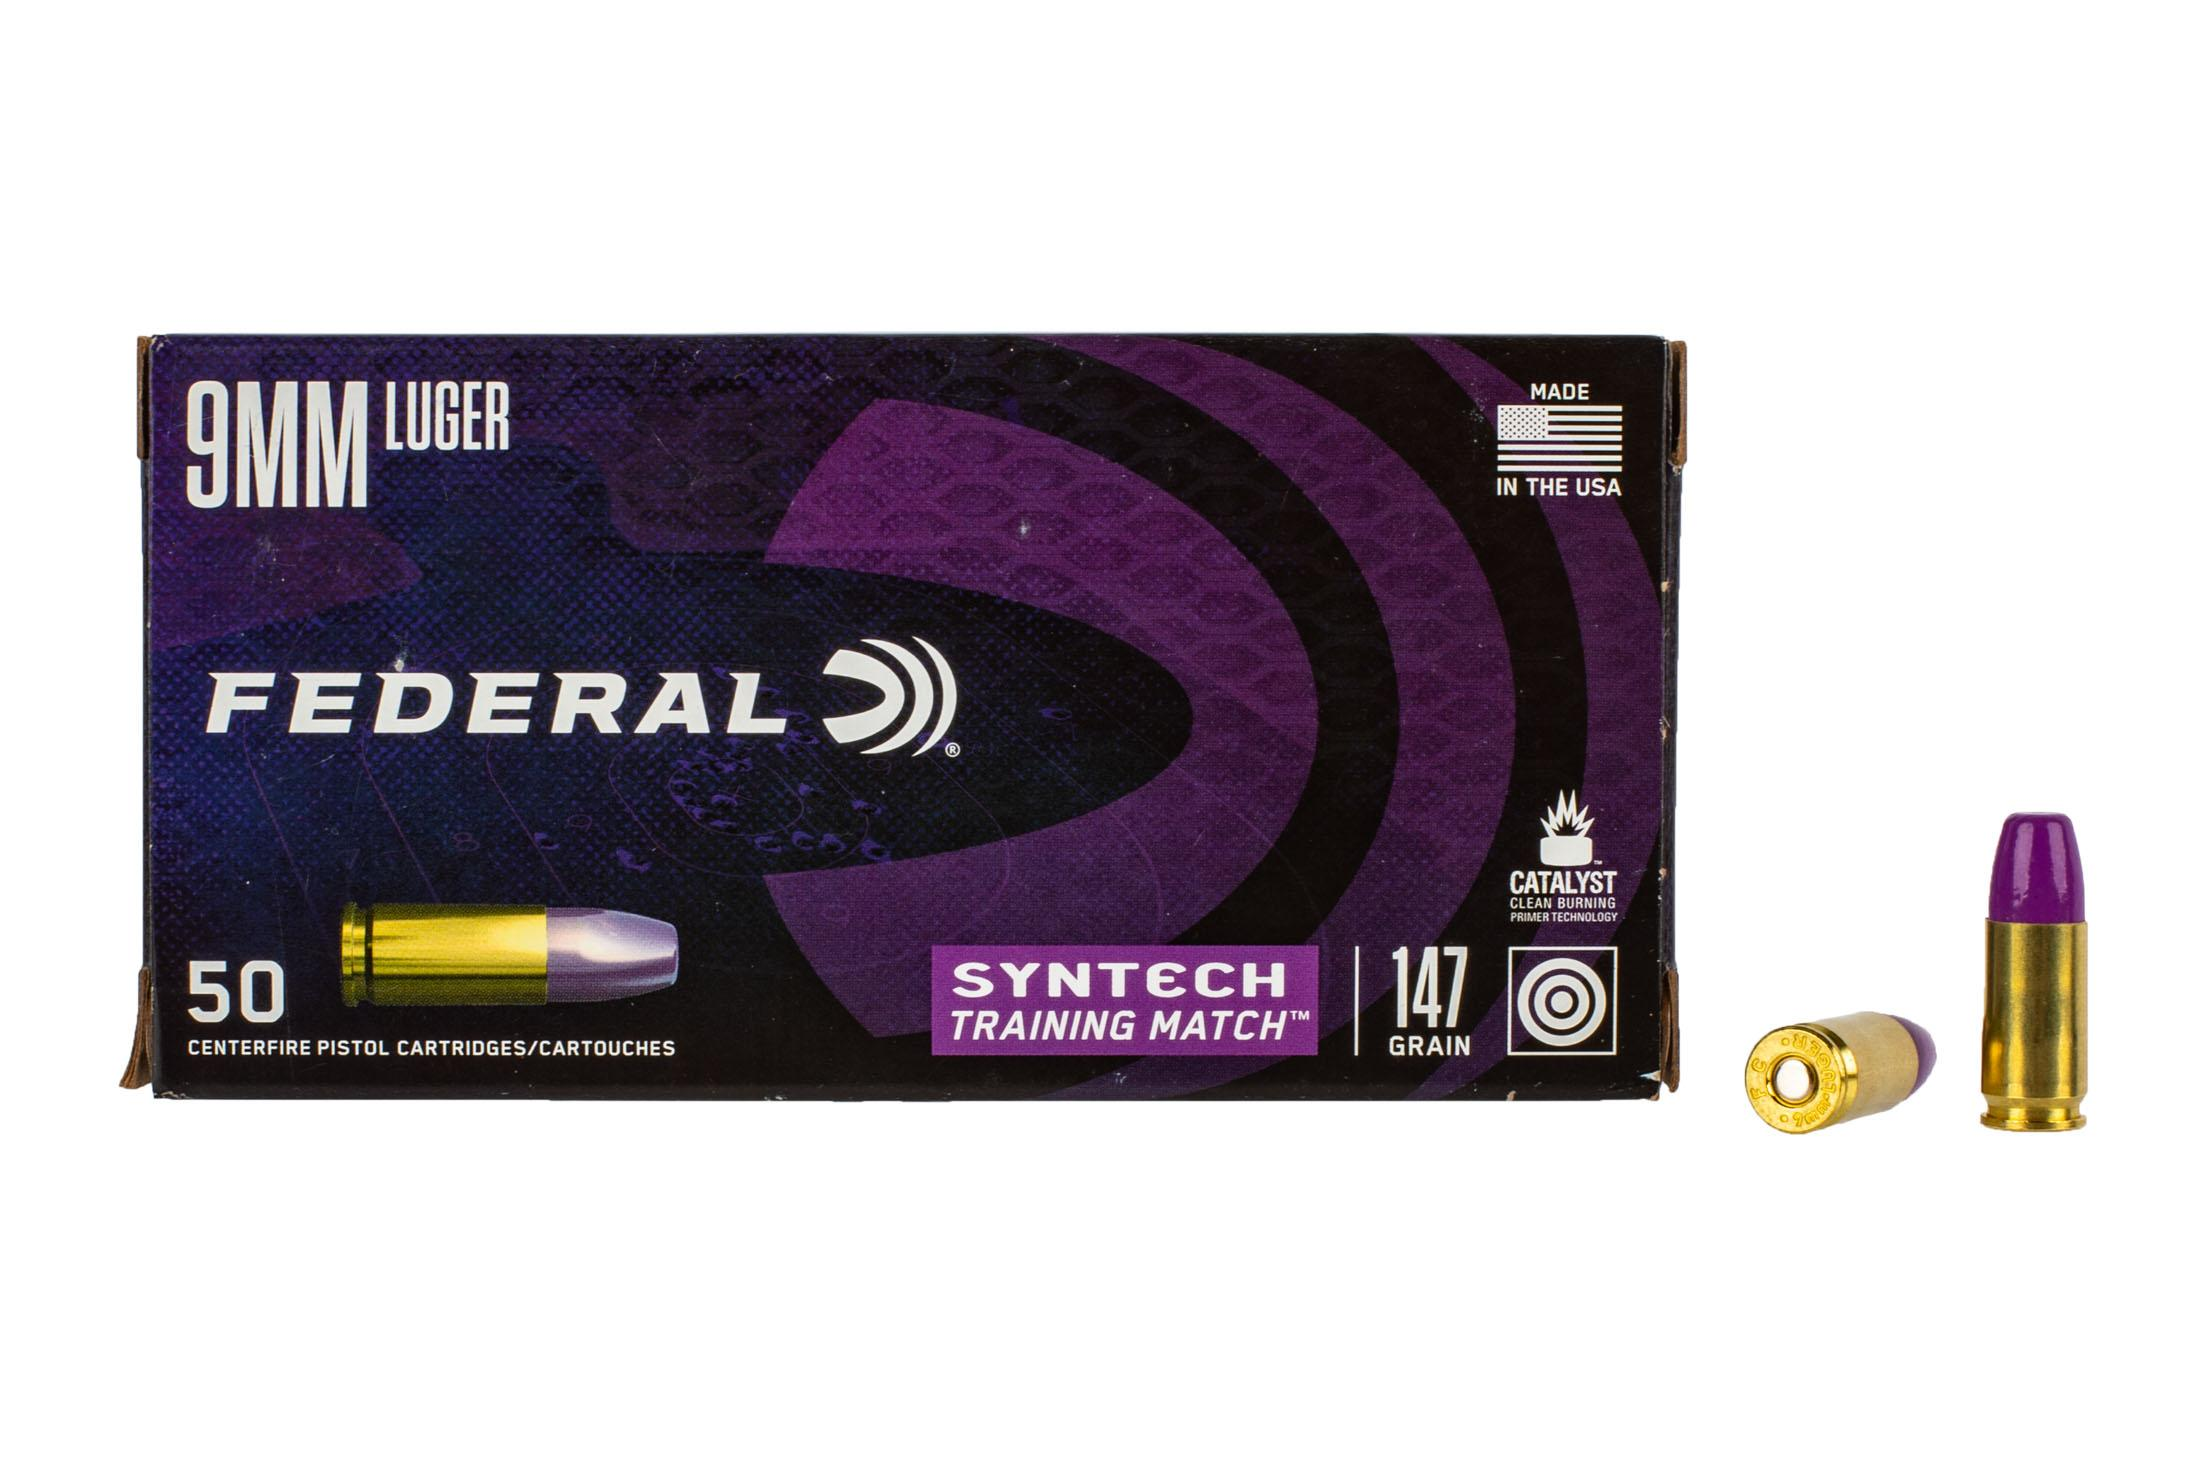 Federal Syntech 9mm ammo features a polymer bullet that resembles the HST